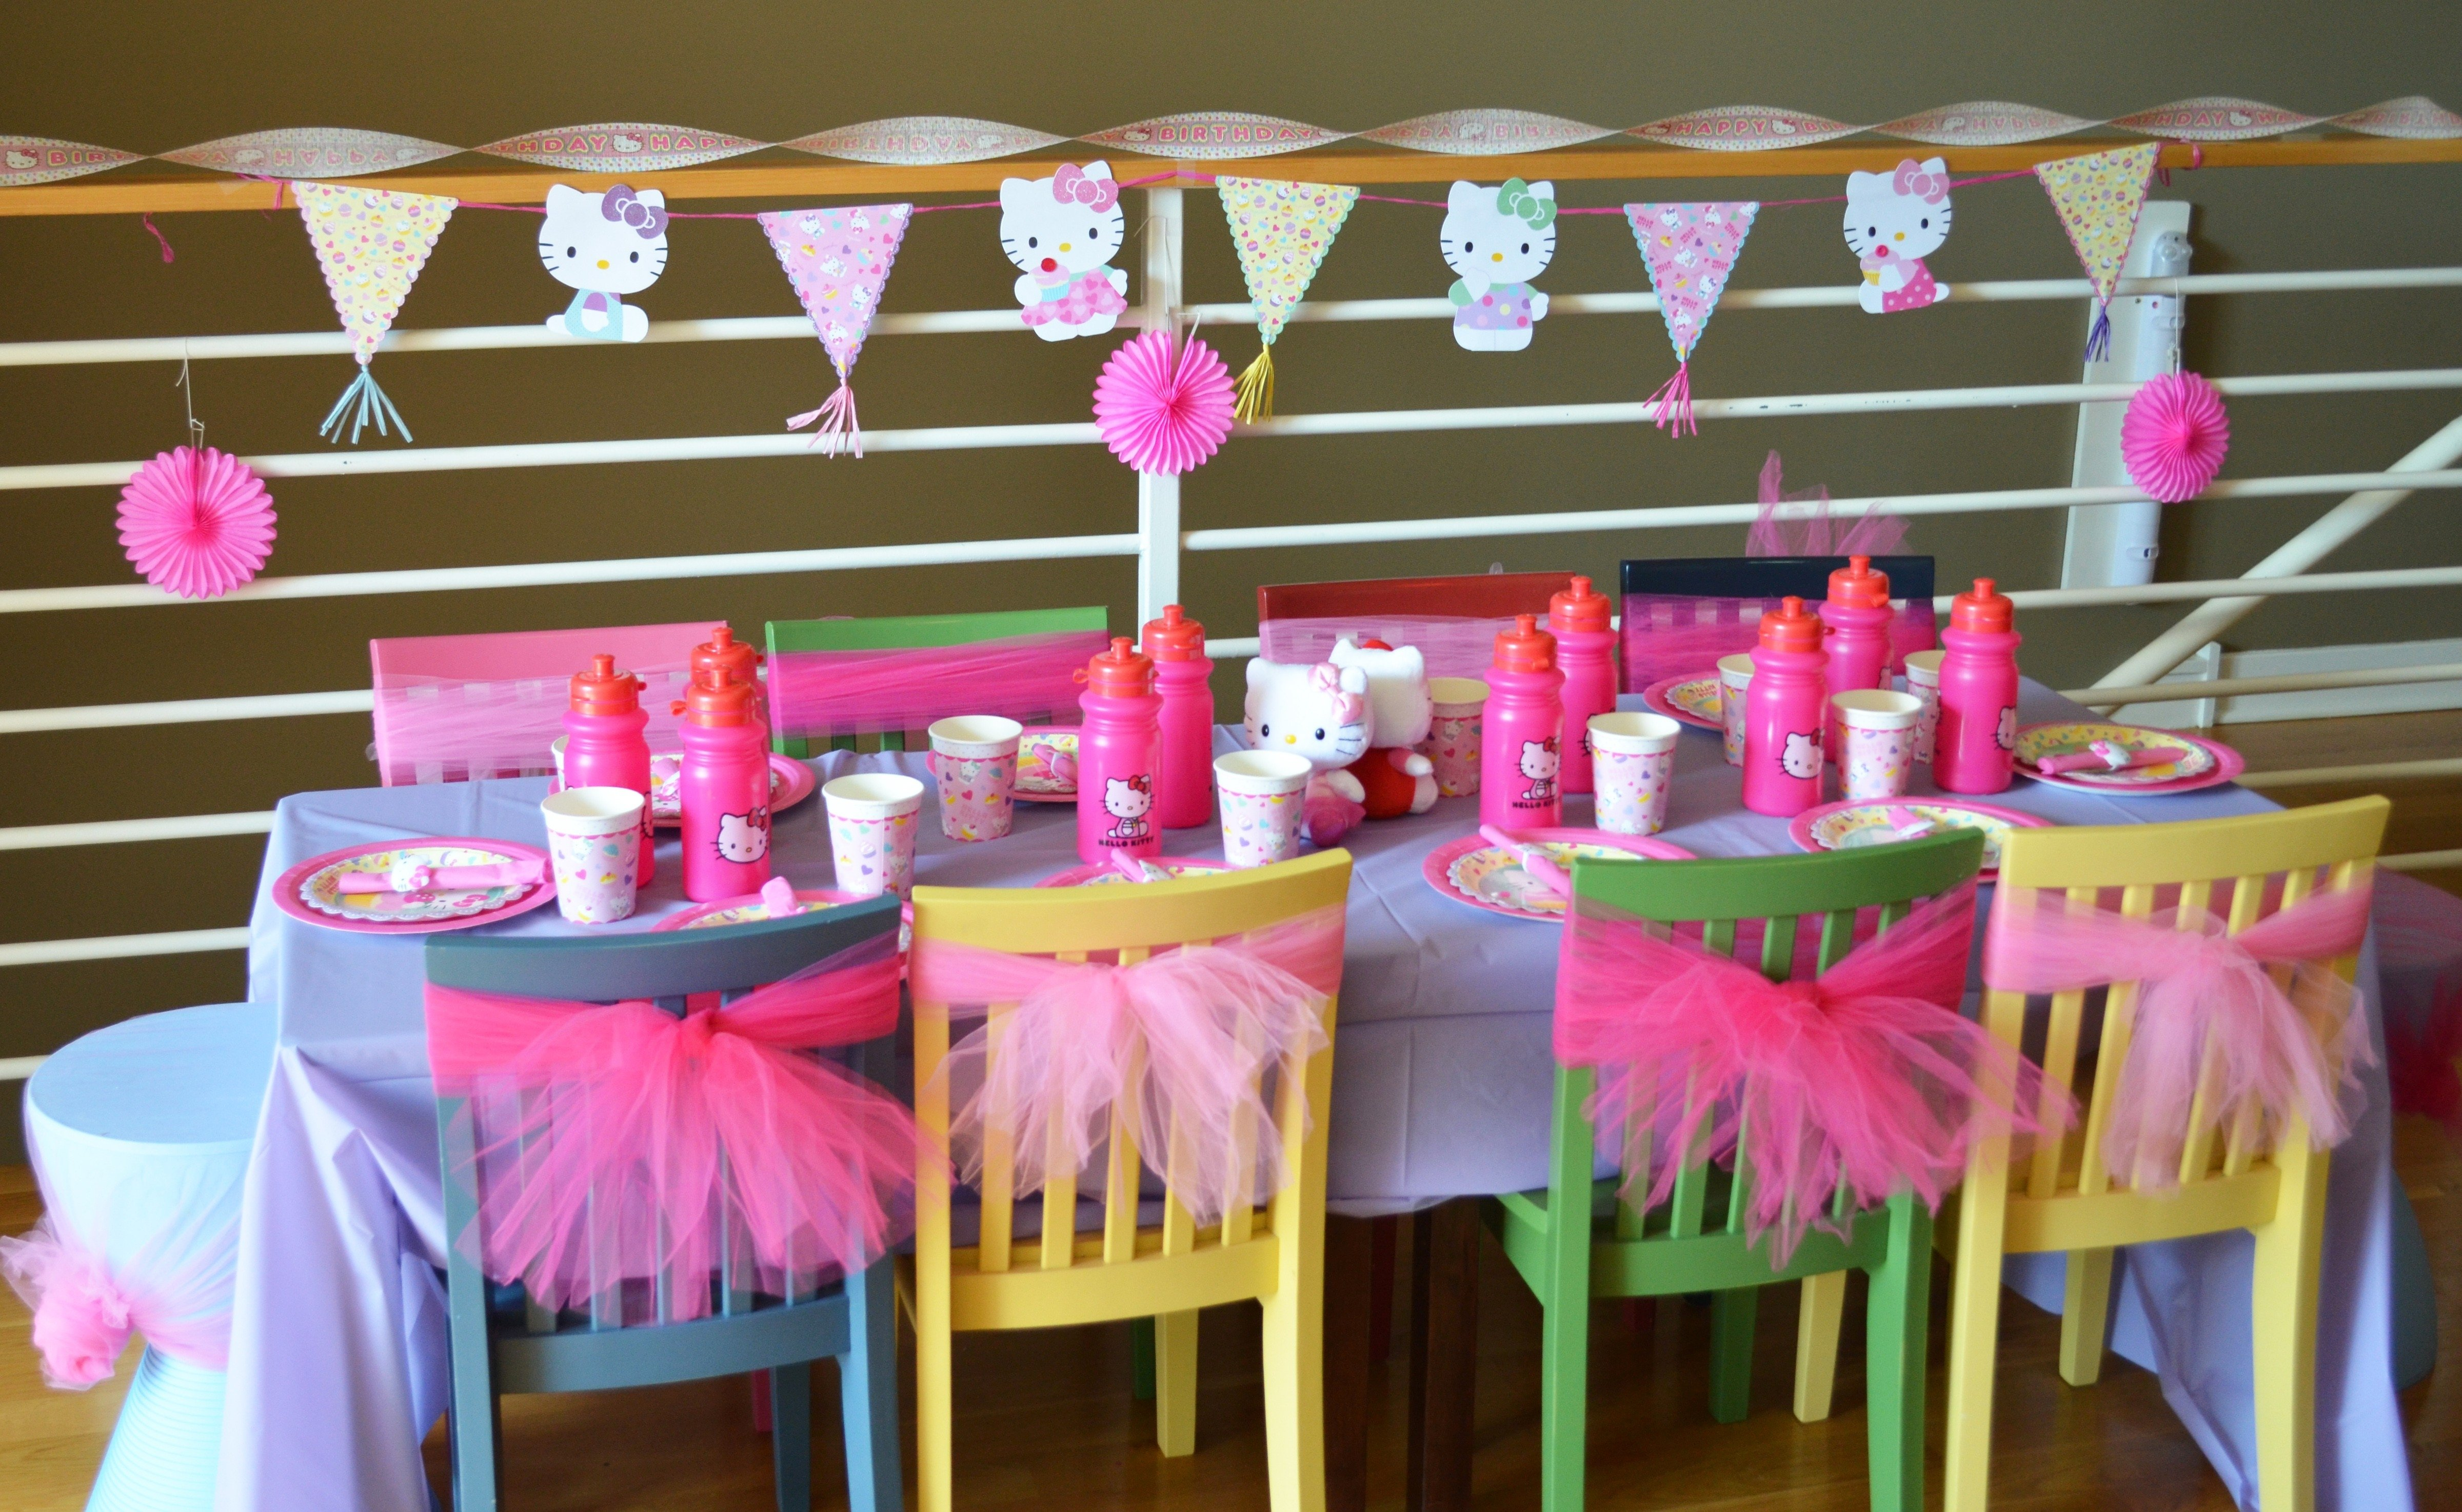 10 Wonderful 3 Year Old Party Ideas 27 cute models regarding 3 year old birthday party that you shouldn 1 2021